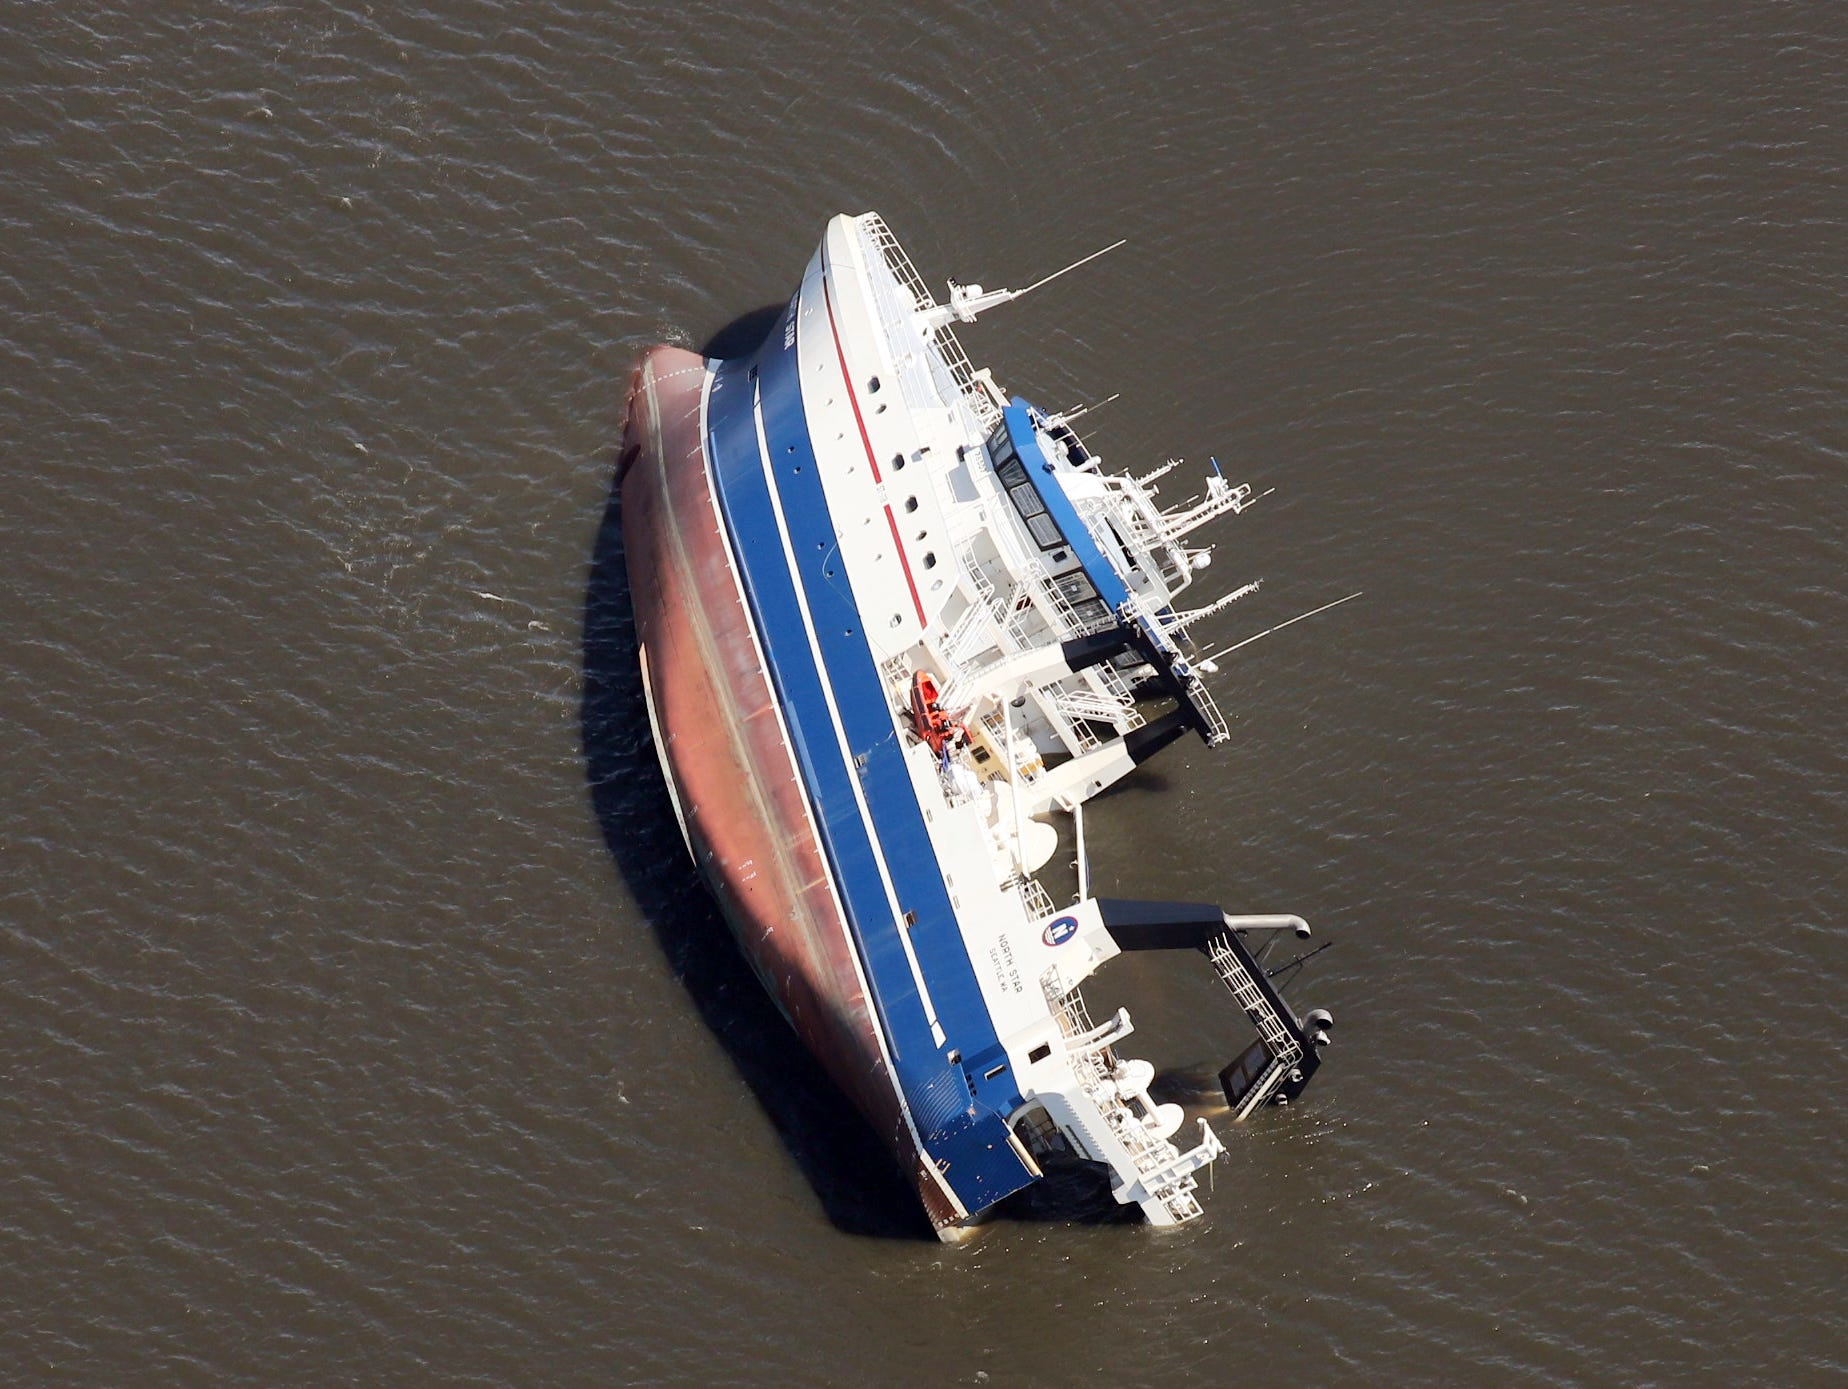 A large ship lists on its side in the St. Andrew Bay, at Panama City, Fla., Thursday, Oct. 11, 2018. The devastation inflicted by Hurricane Michael came into focus Thursday with rows upon rows of homes found smashed to pieces, and rescue crews began making their way into the stricken areas in hopes of accounting for hundreds of people who may have stayed behind. (Michael Snyder